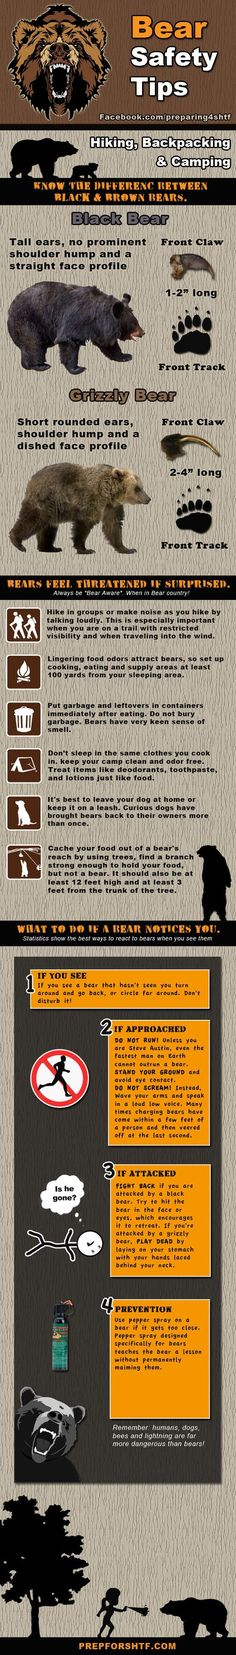 Bear Safety Infographic Information people should know when spending time hiking or camping in bear country! Wilderness Survival, Camping Survival, Outdoor Survival, Survival Tips, Camping Hacks, Camping Essentials, Bushcraft Camping, Camping Guide, Camping Ideas